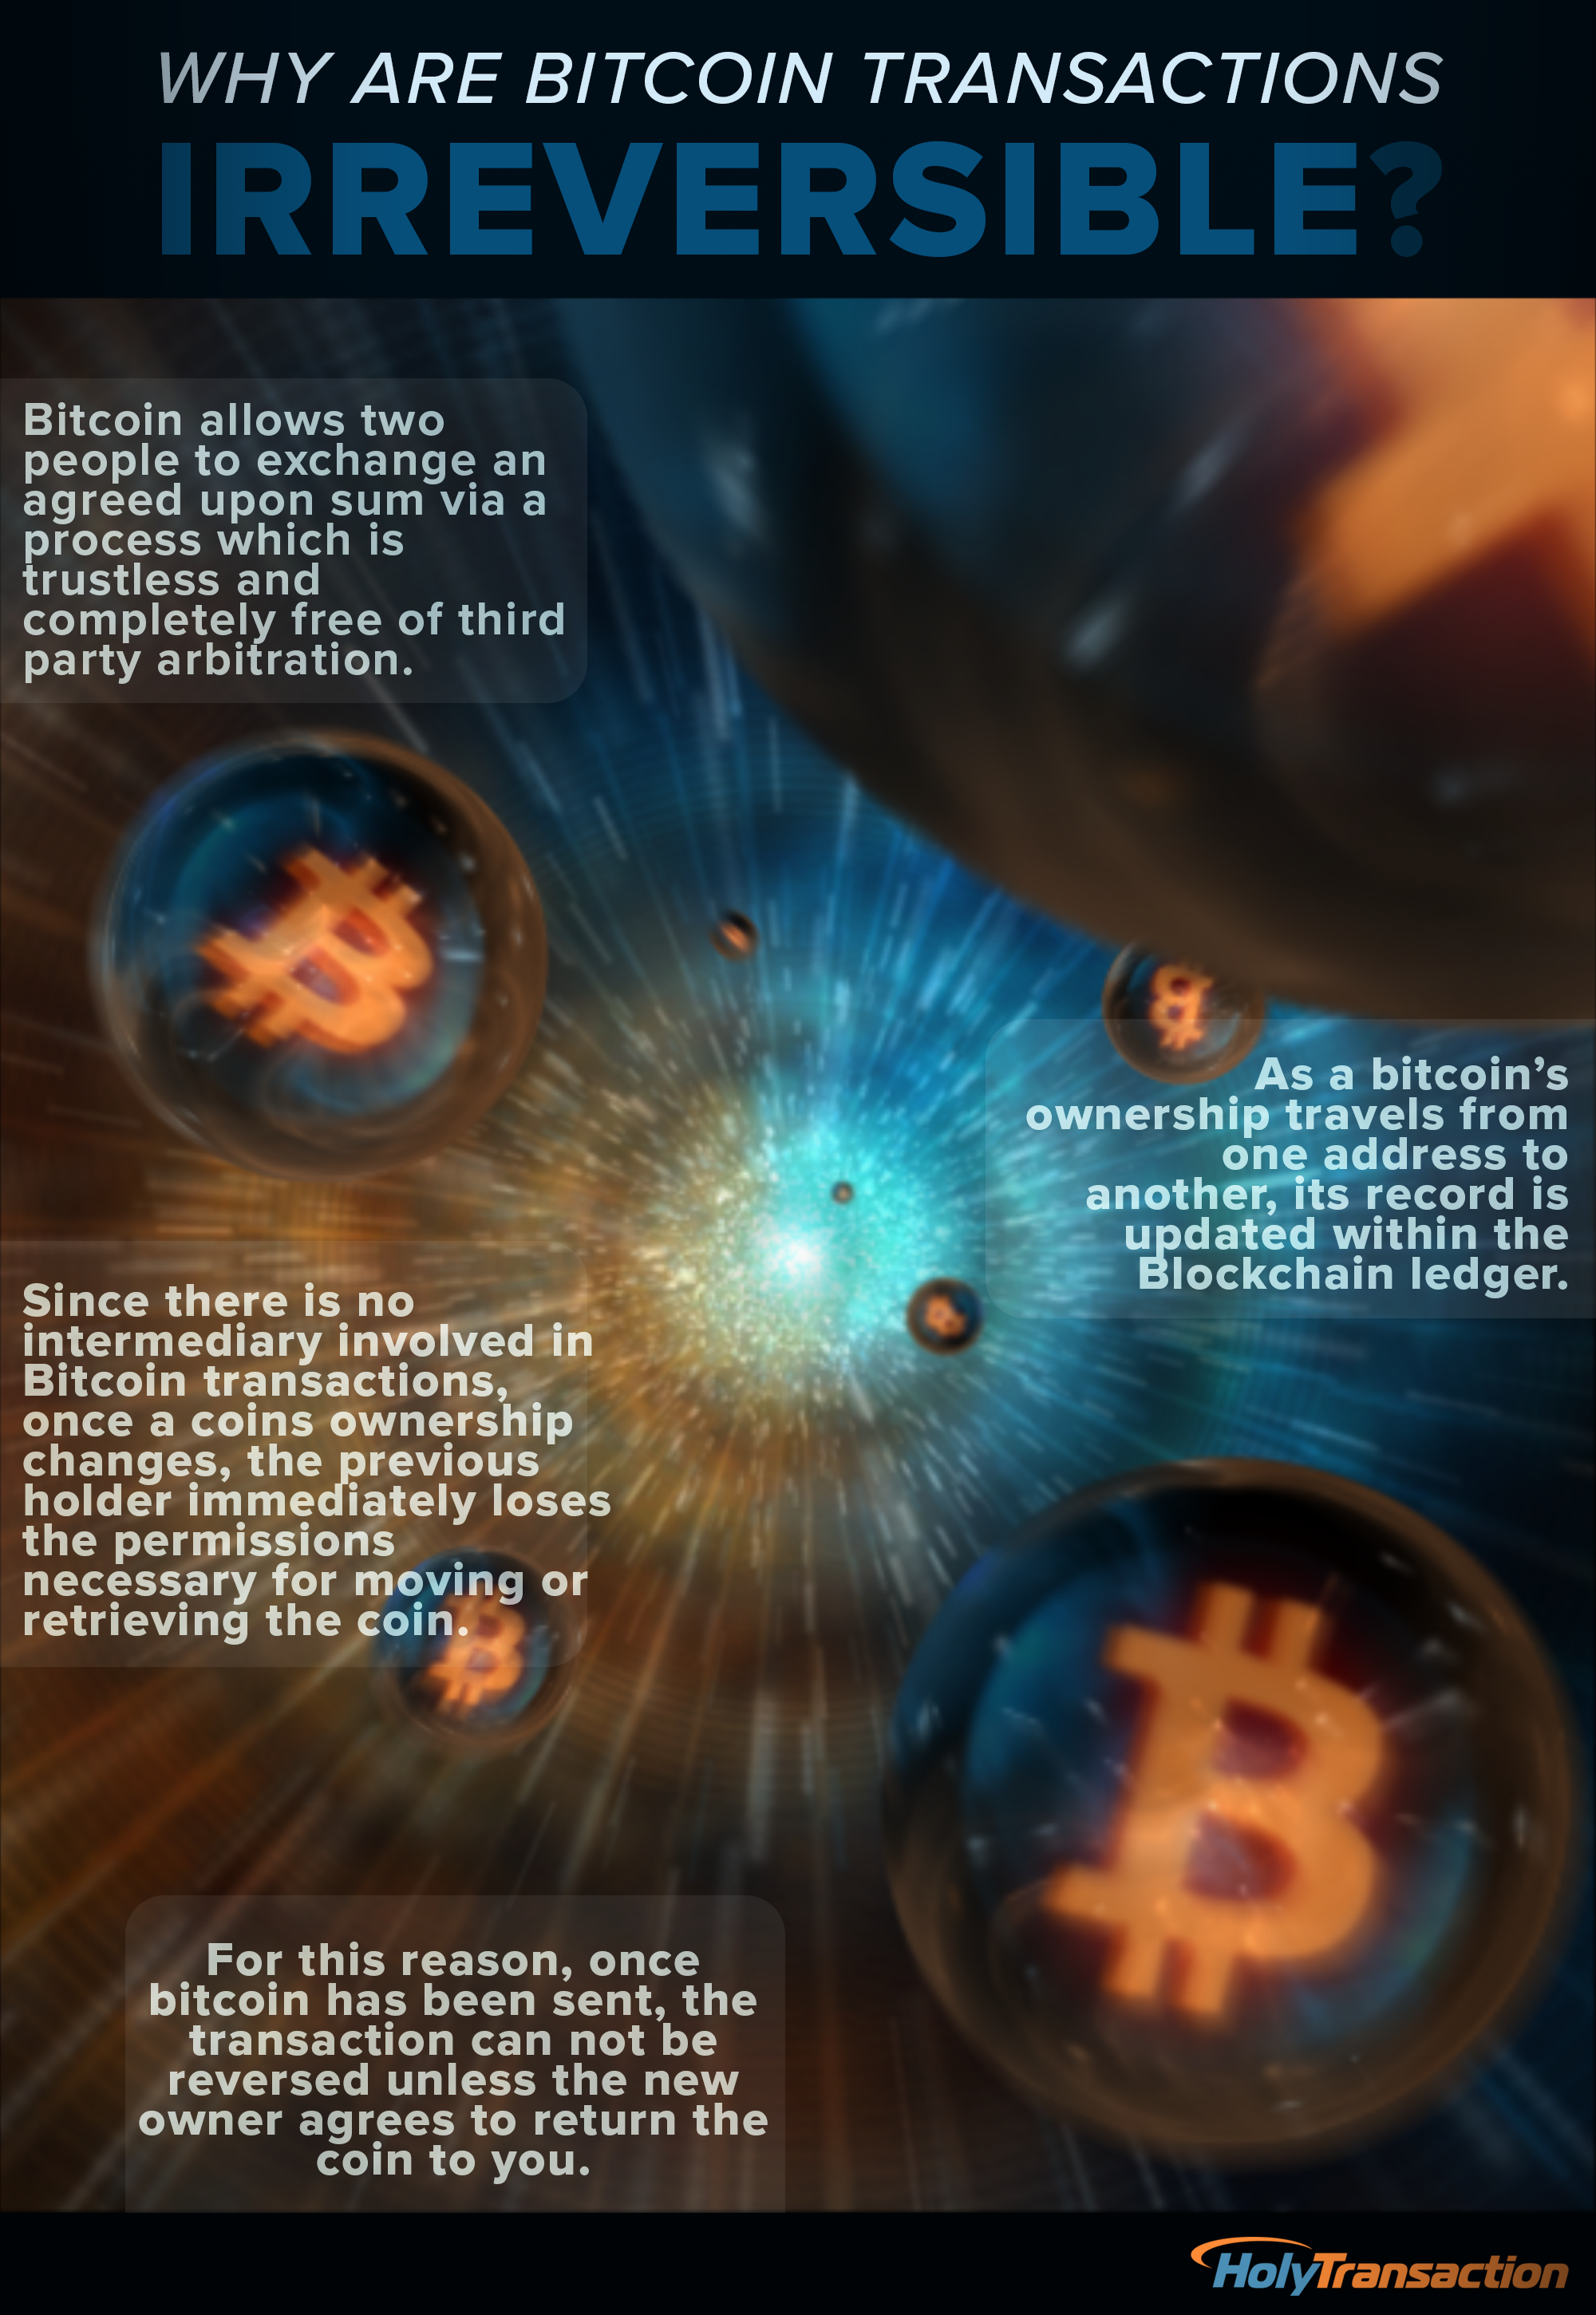 Why Are Bitcoin Transactions Irreversible? - Infographic